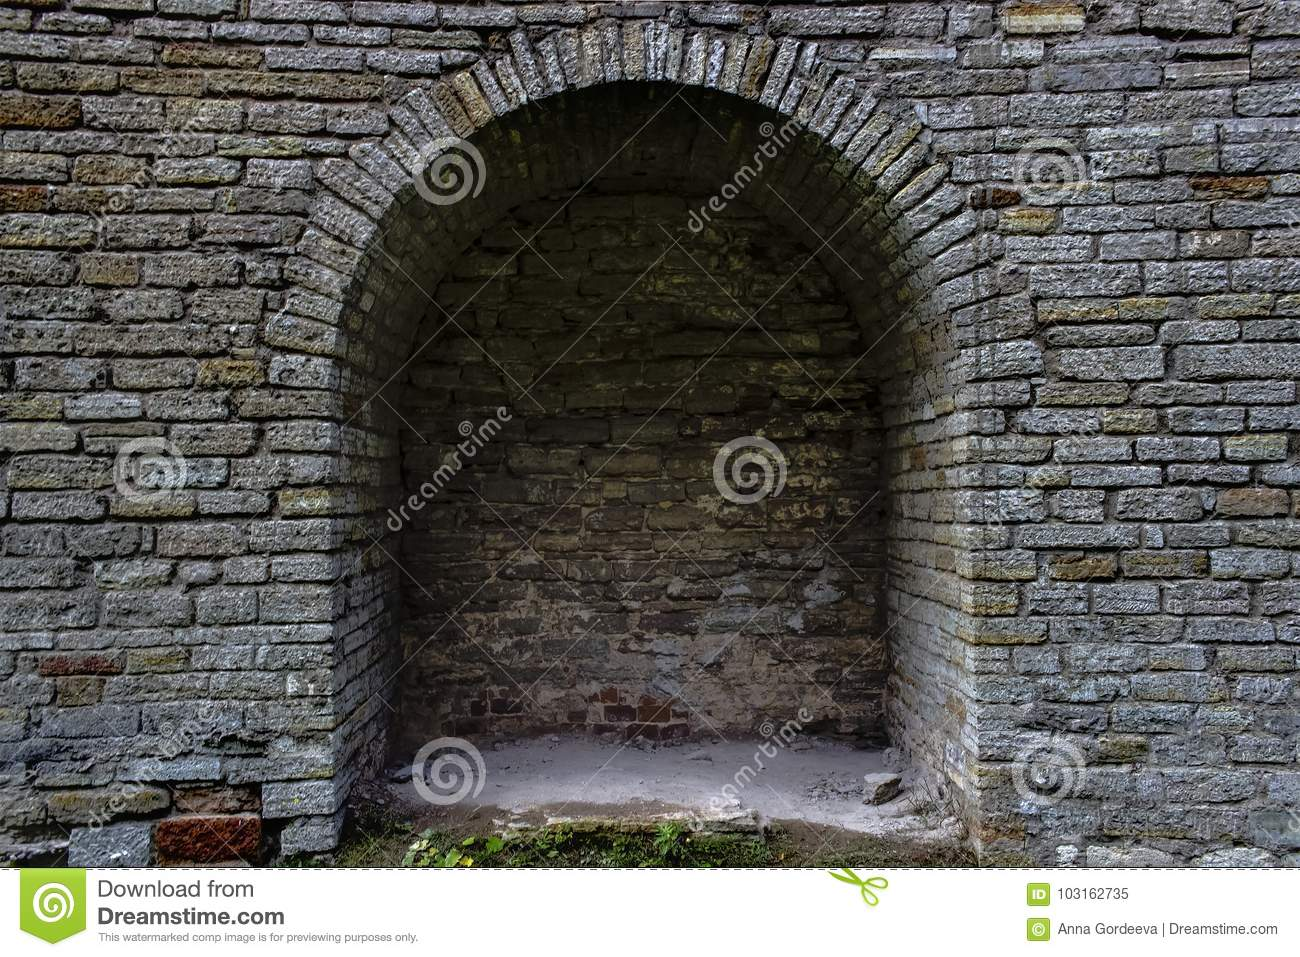 Stone brick antique arch is a window. Northern Europe, the castle. Fortress wall made of gray bricks.